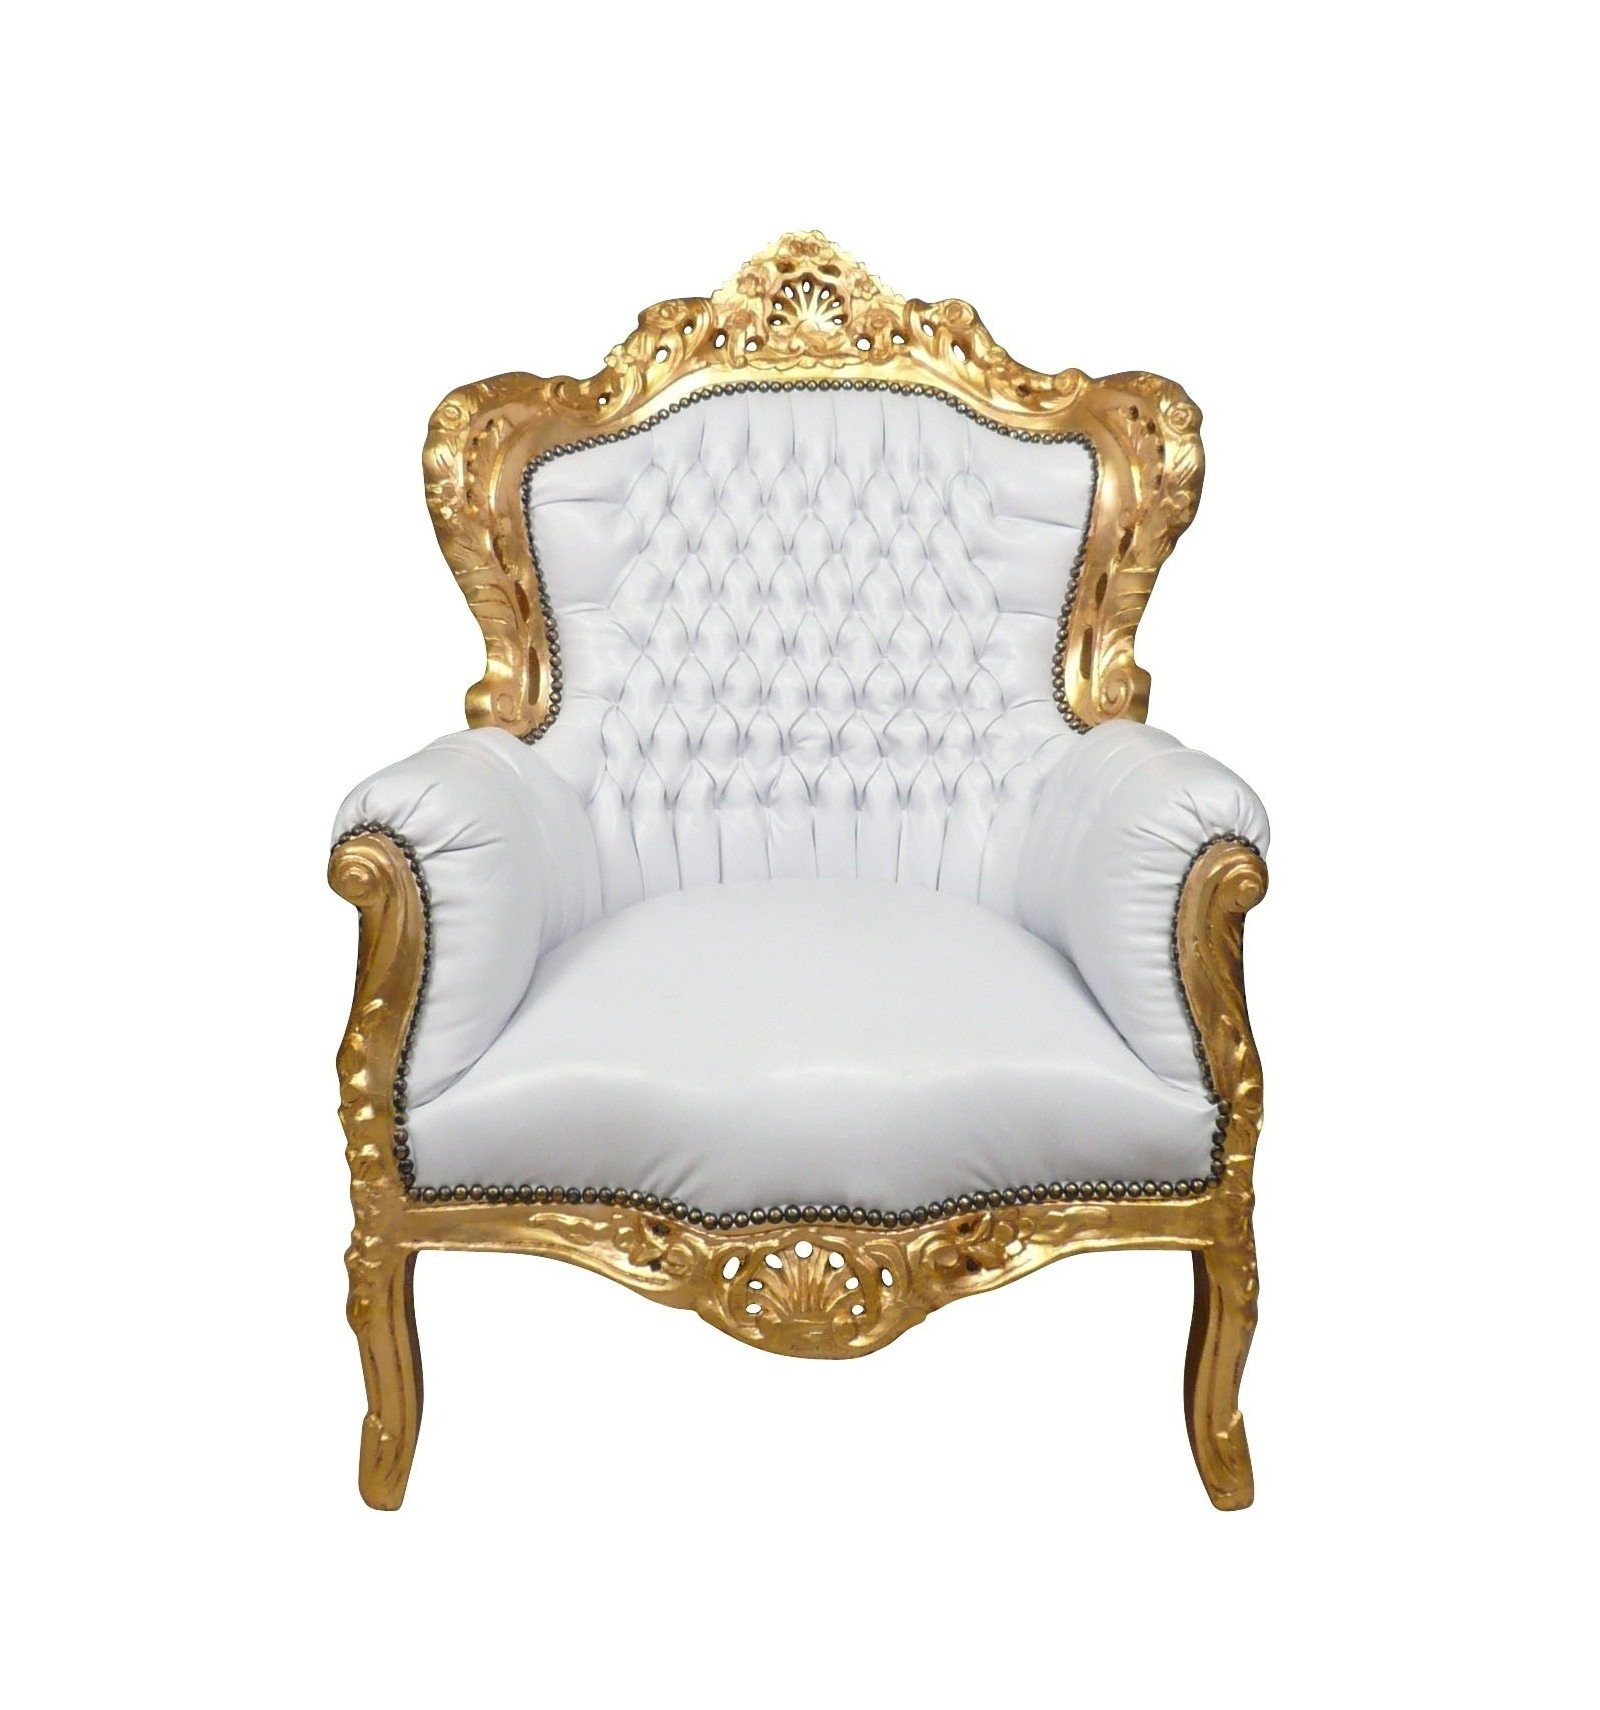 Chaise Coiffeuse Baroque Chaises Baroques Pas Cher